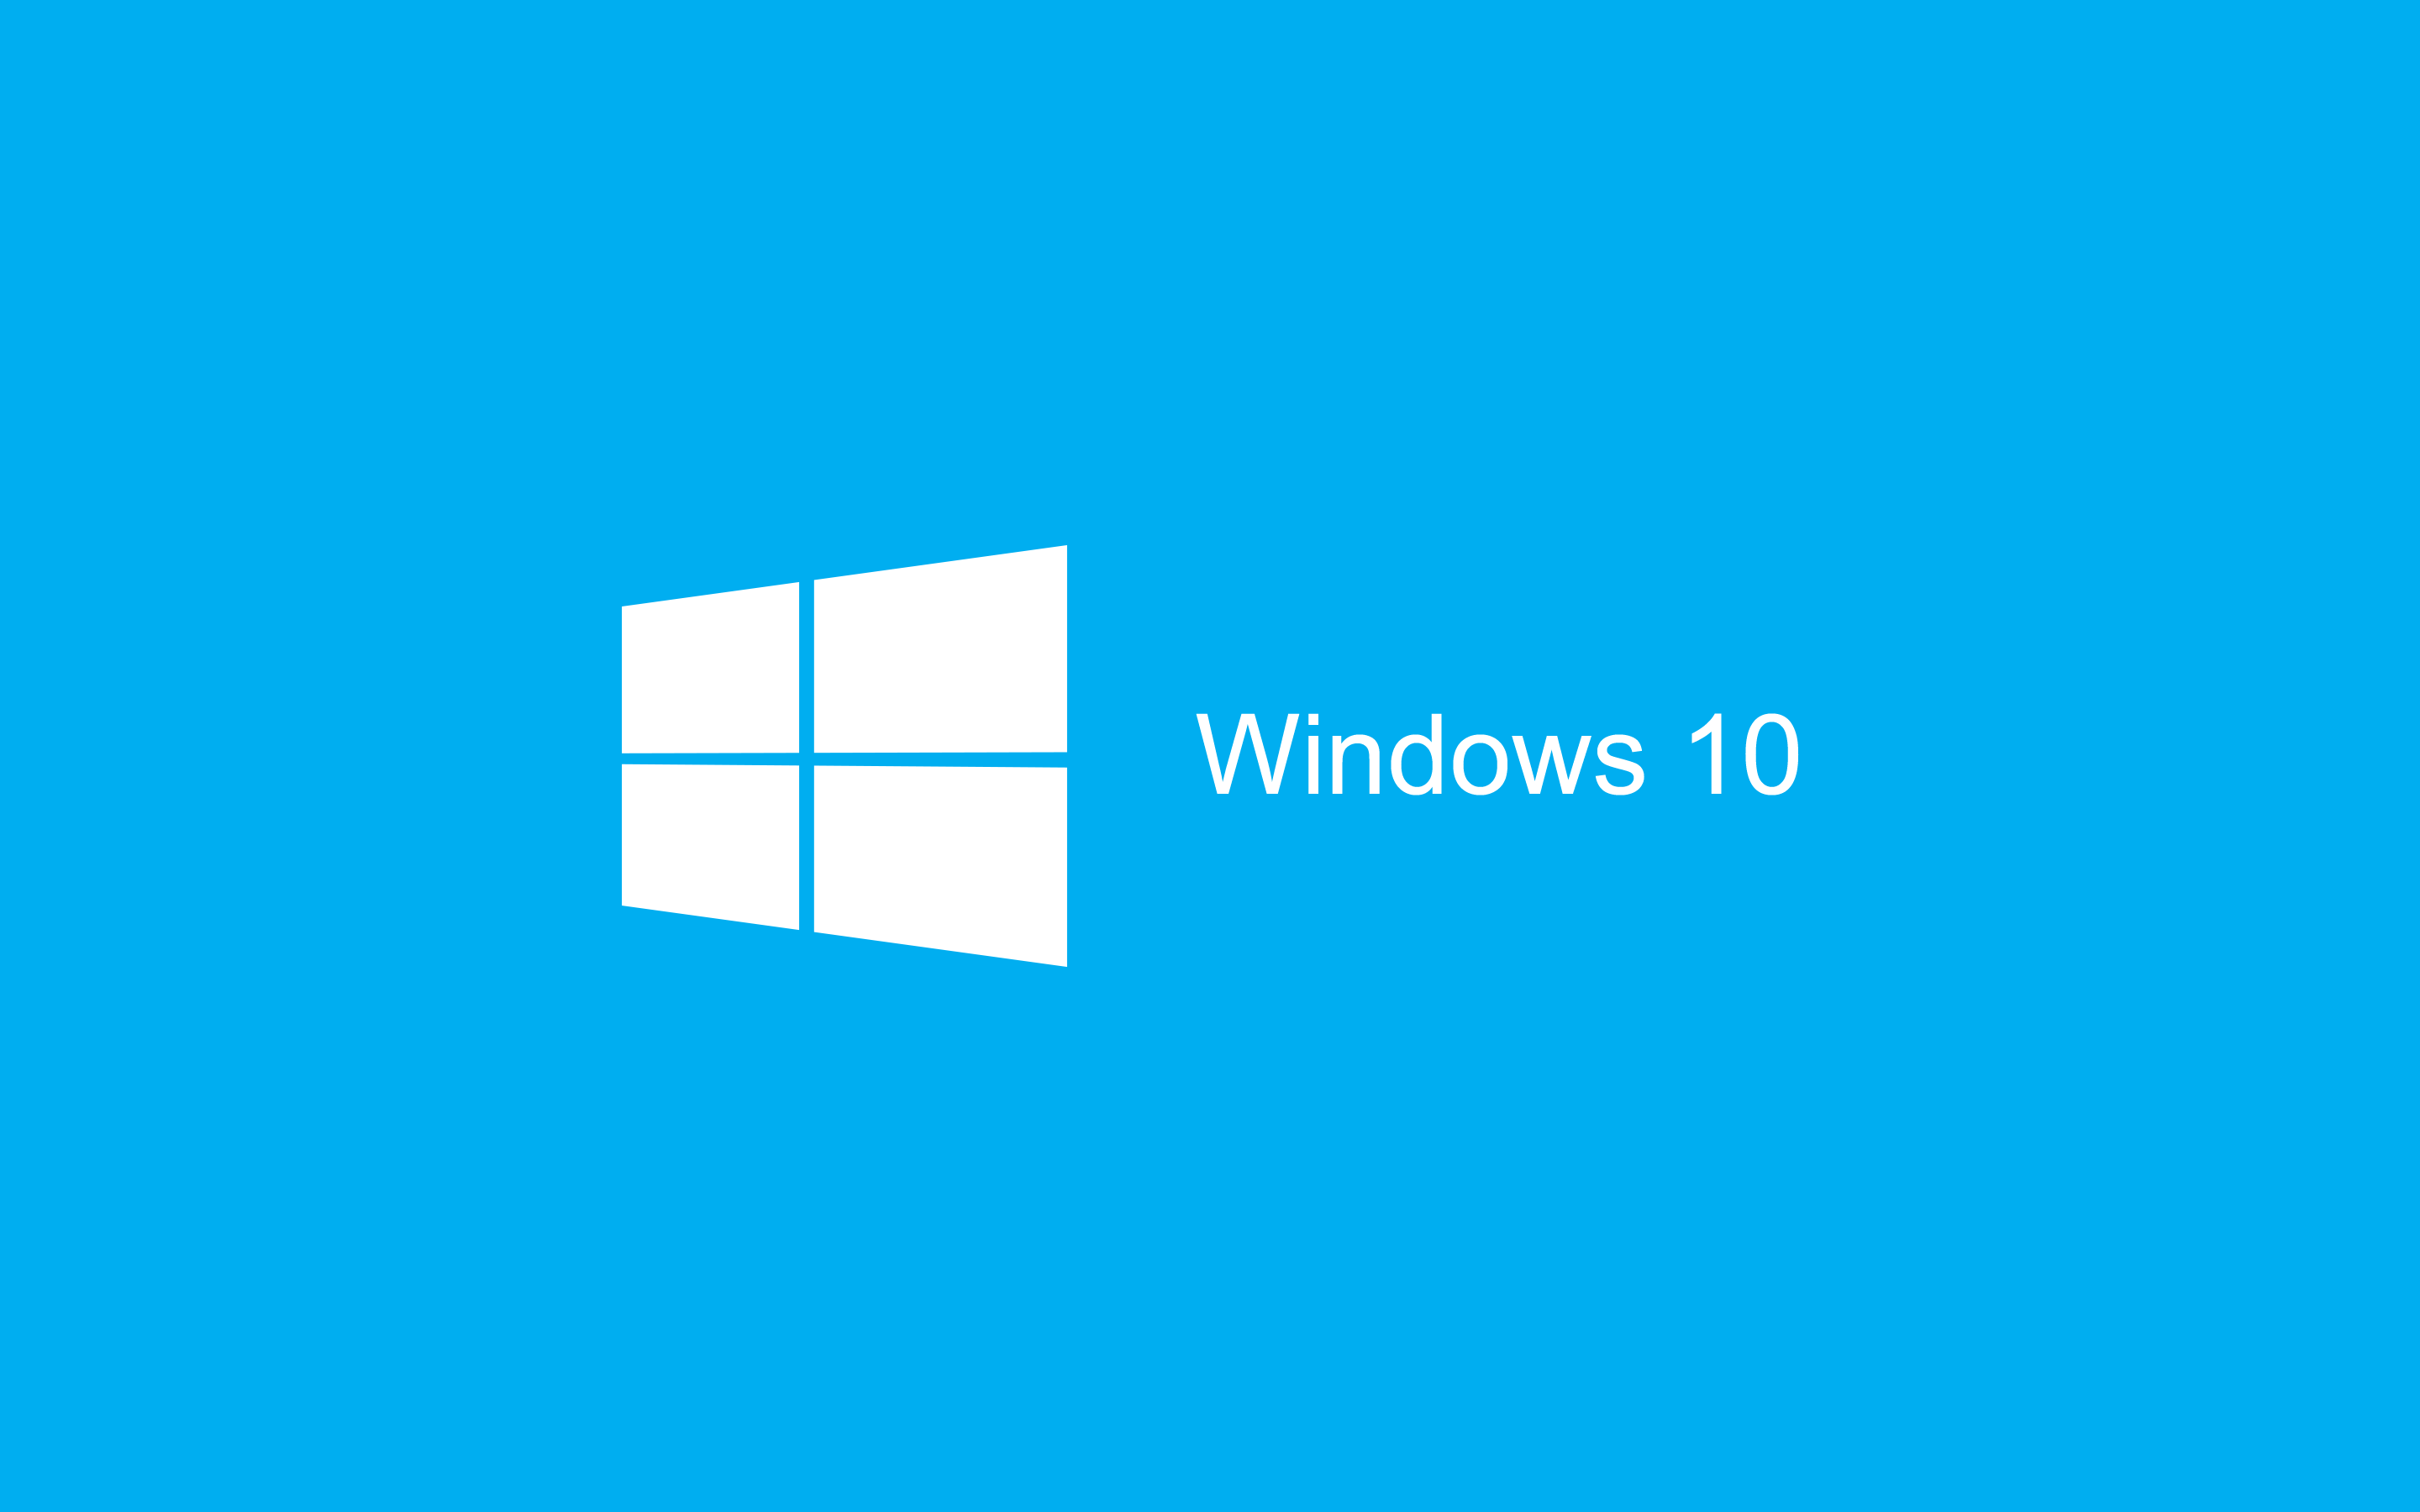 It's Official: Windows 10 Can Run Android Apps... Sort Of